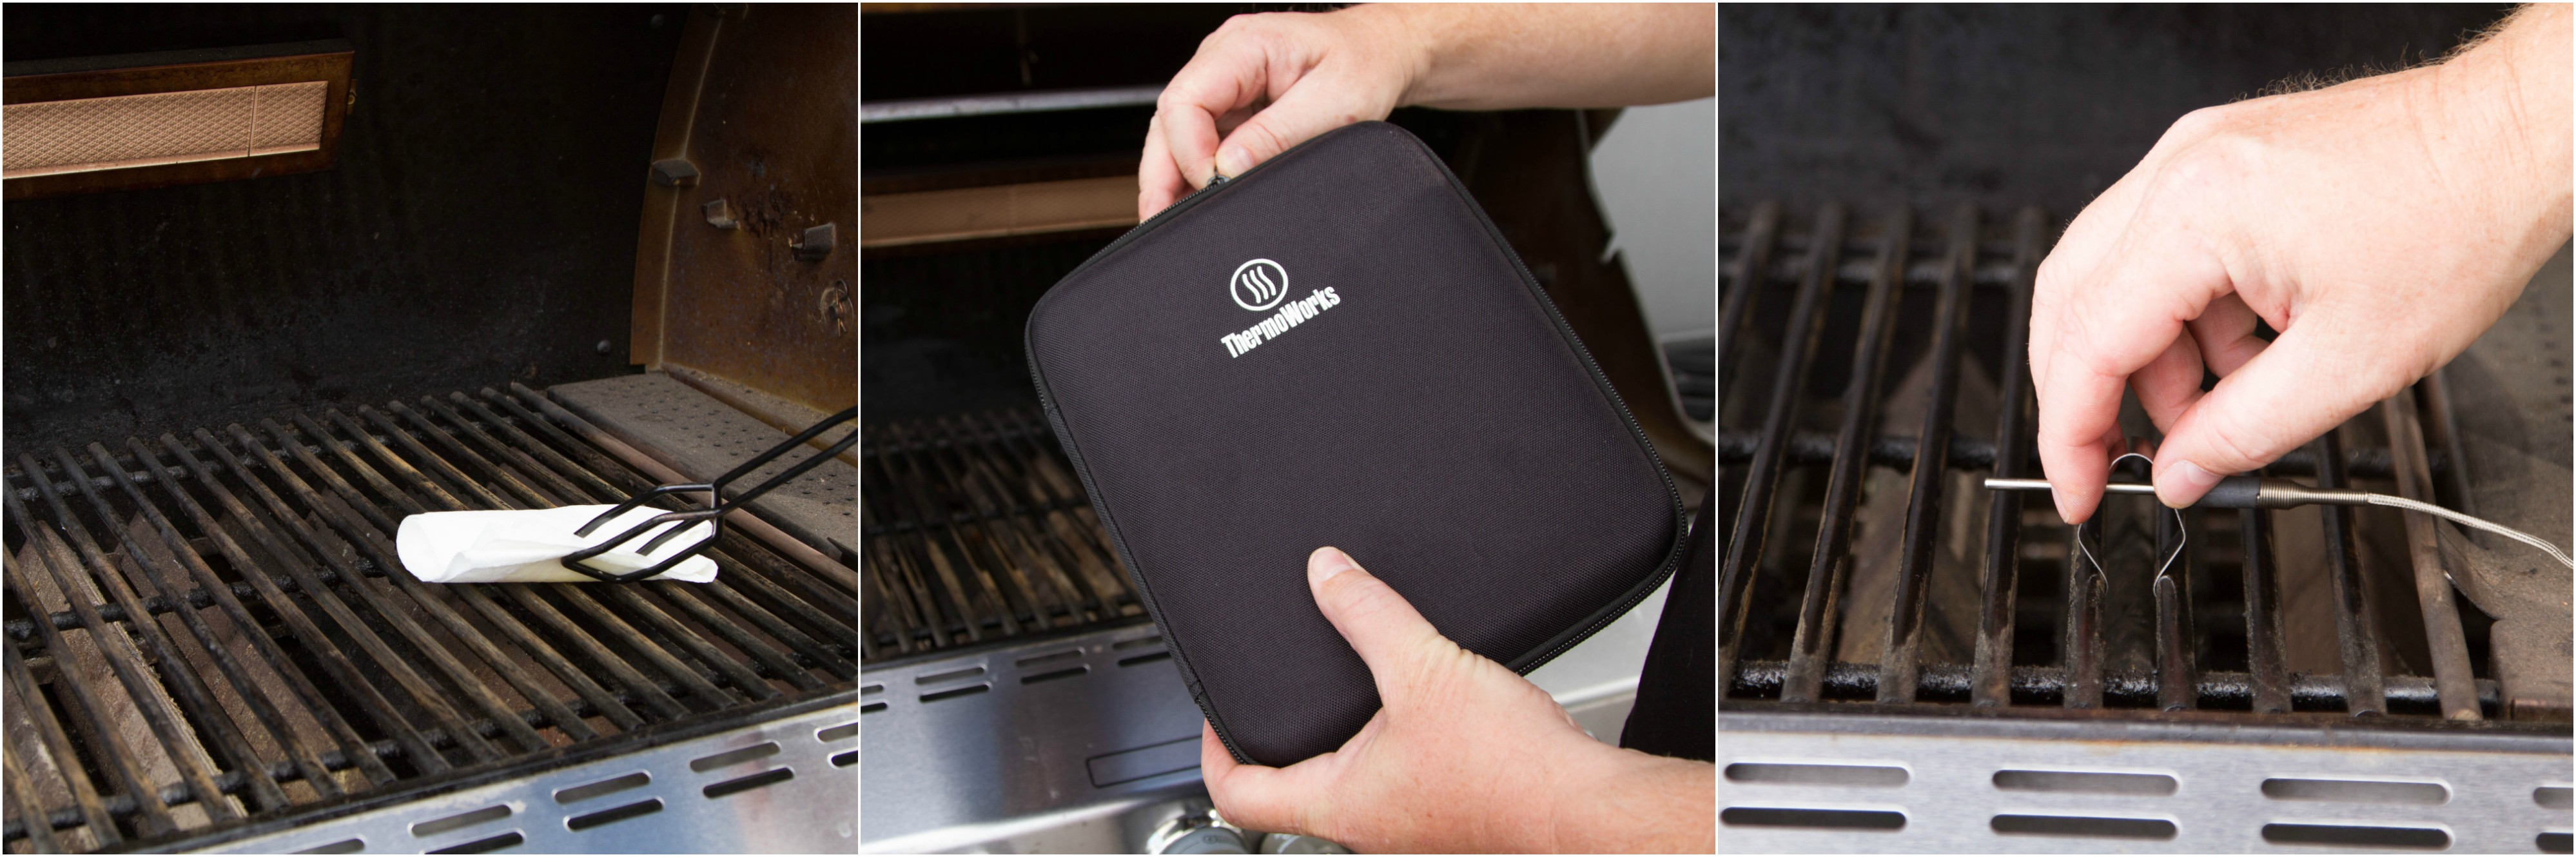 Oiling grill grate, securing air probe with grate clip